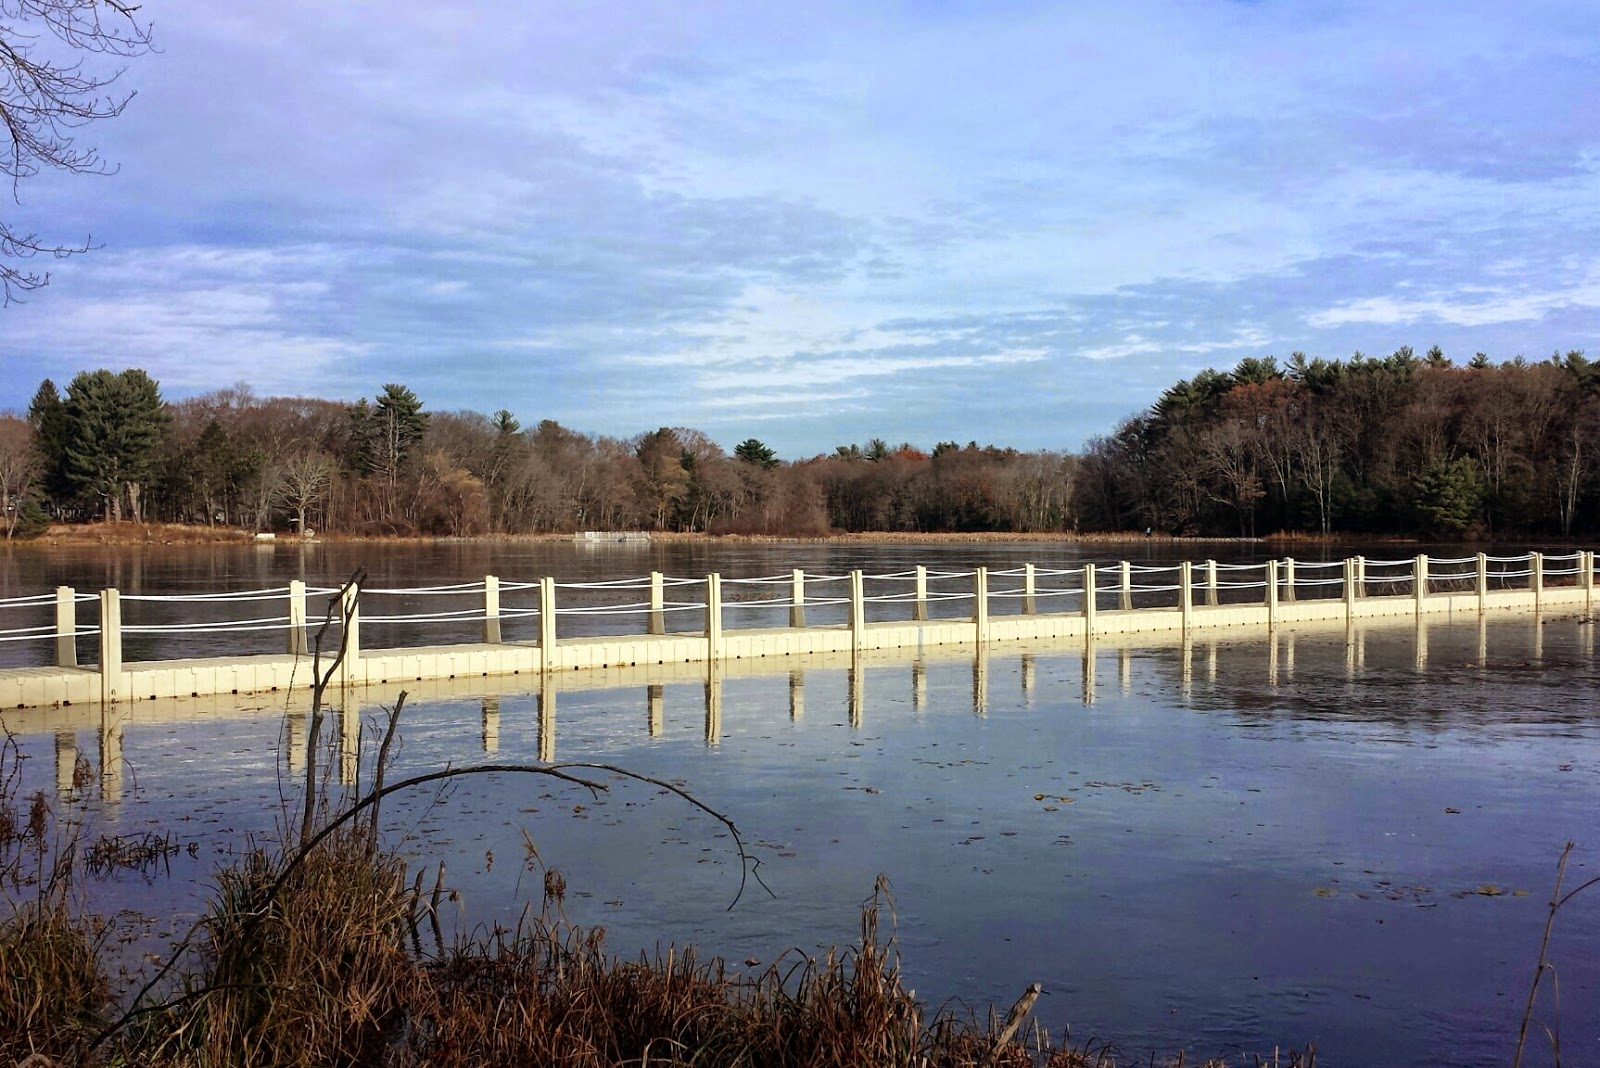 the new floating bridge was pretty solid in the ice on Saturday